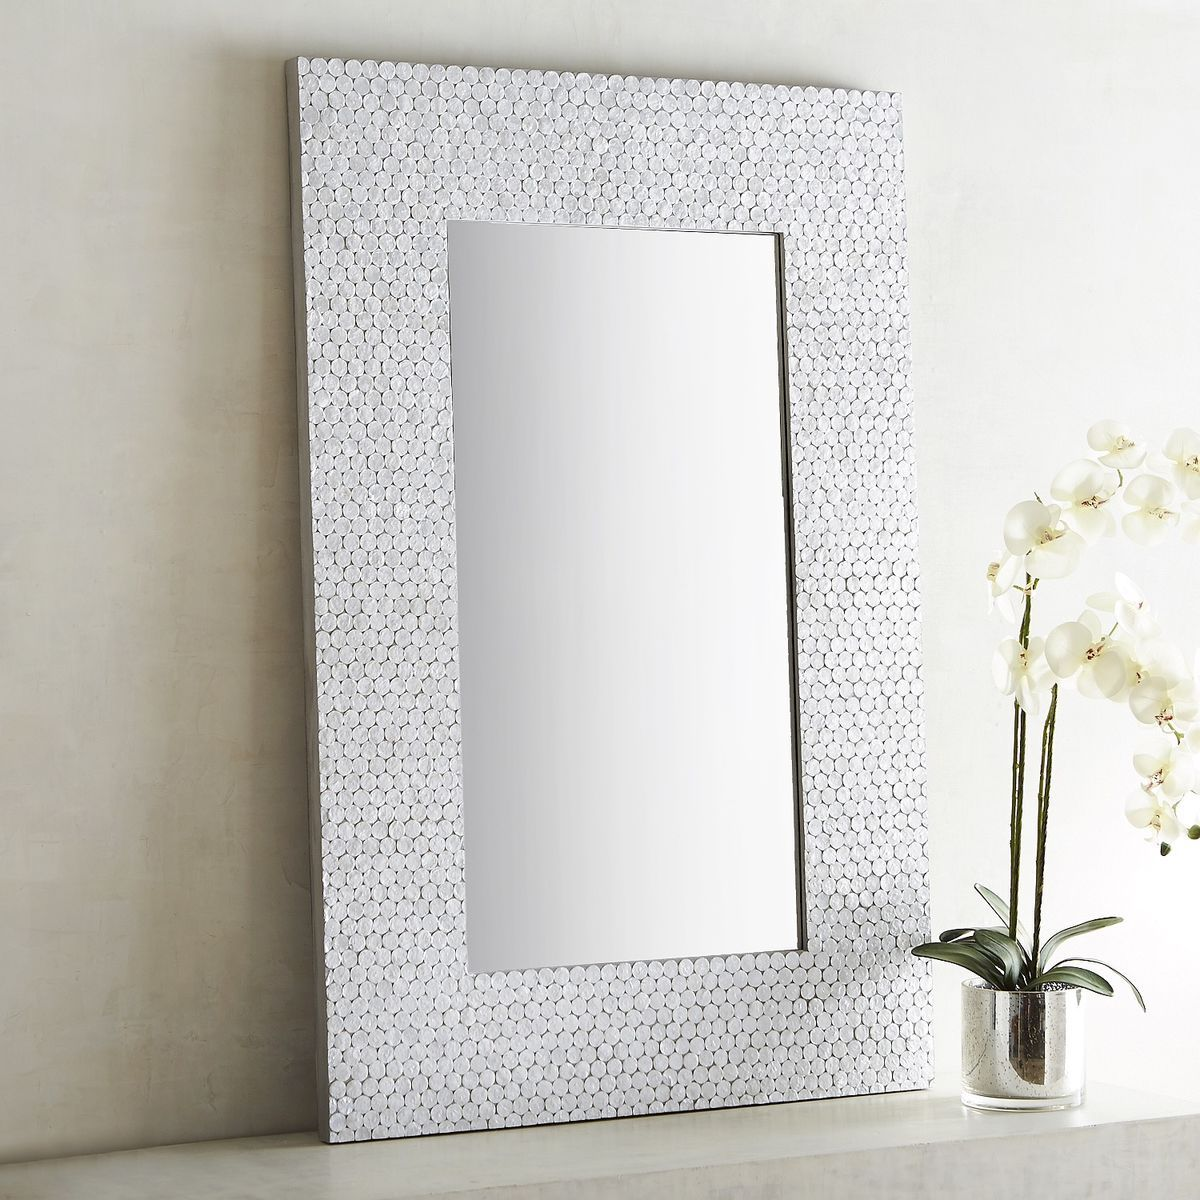 32 X 48 Mirror Part - 45: Shimmer White Capiz 32x48 Mirror